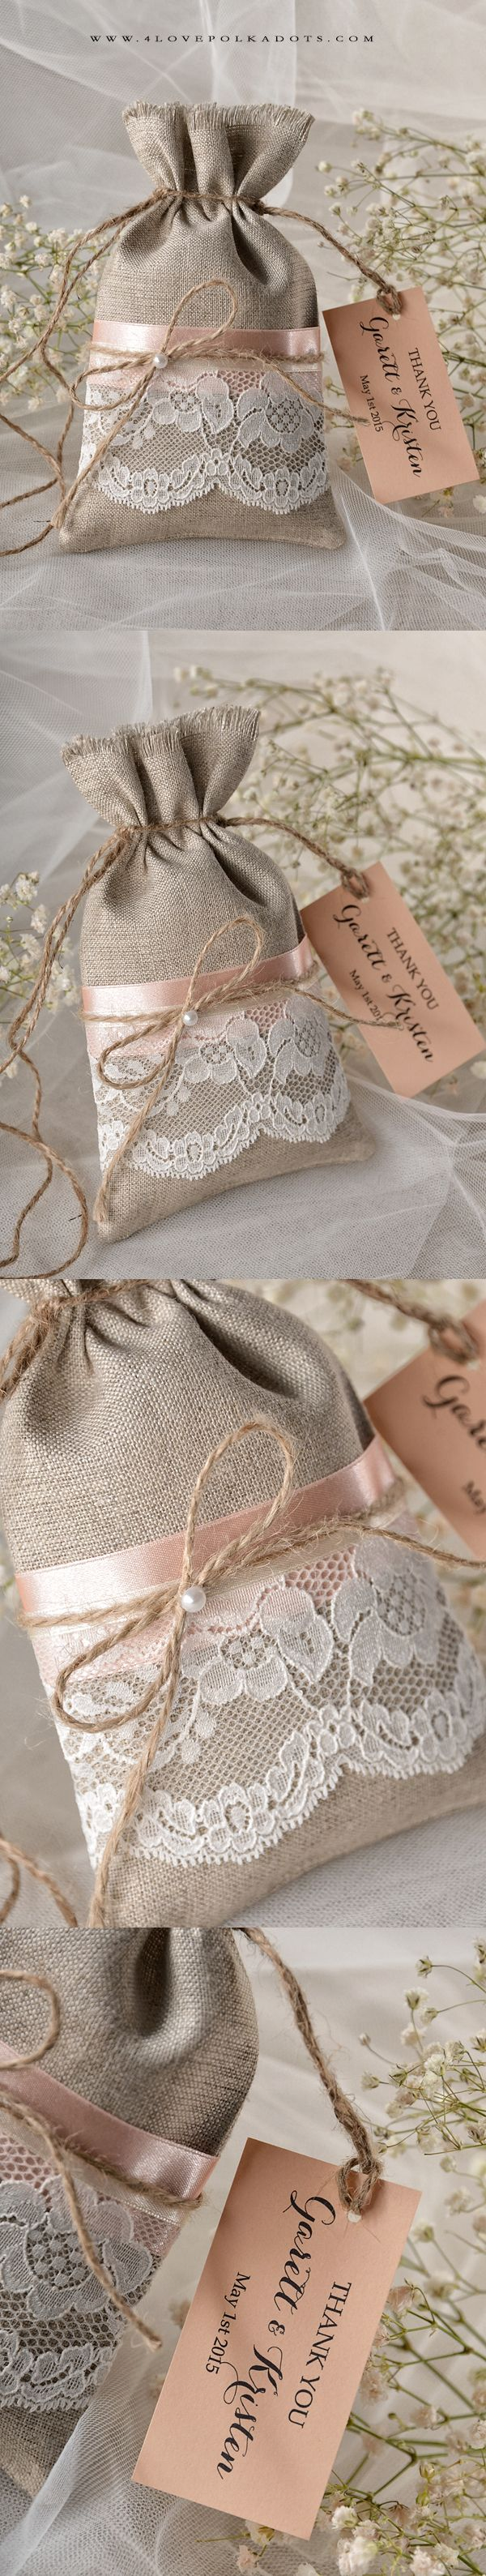 Lovely Linen Favor Bag with real lace & paper tag - impress Your Wedding Guests #summerwedding #weddingideas